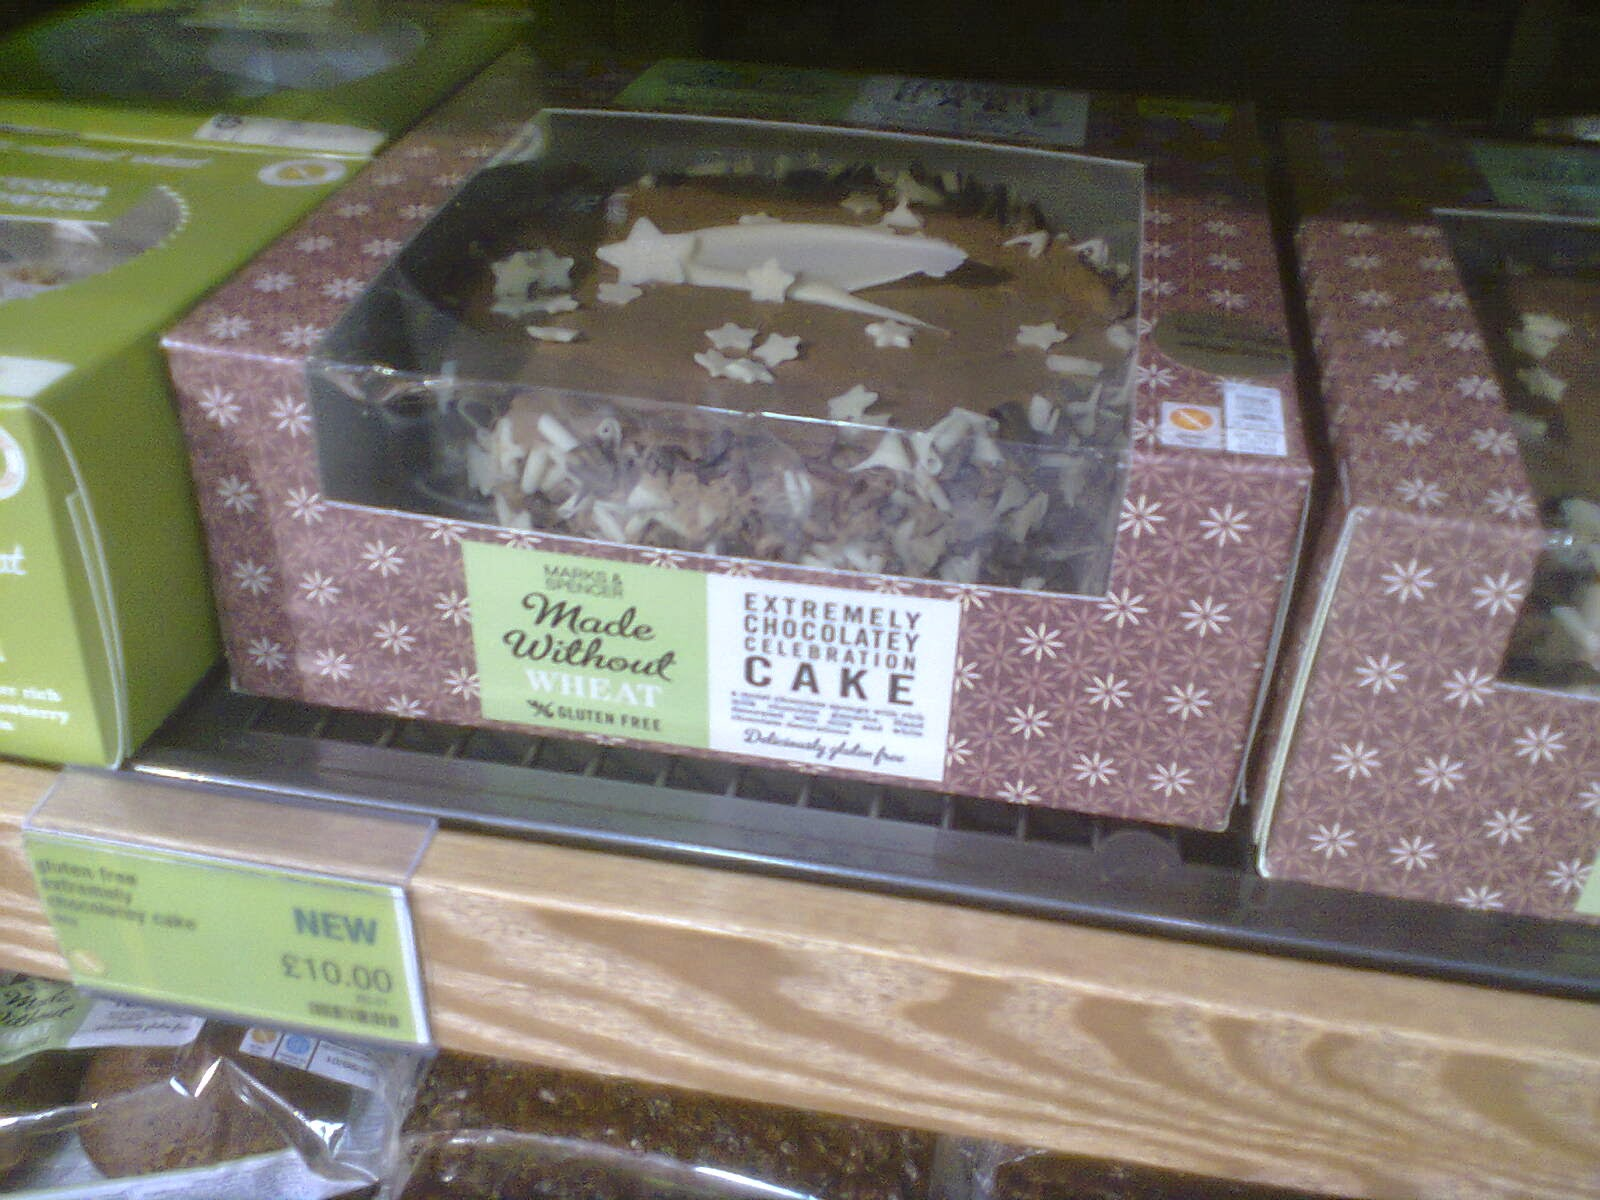 The Made Without Wheat Extremely Chocolatey Celebration Cake by M&S